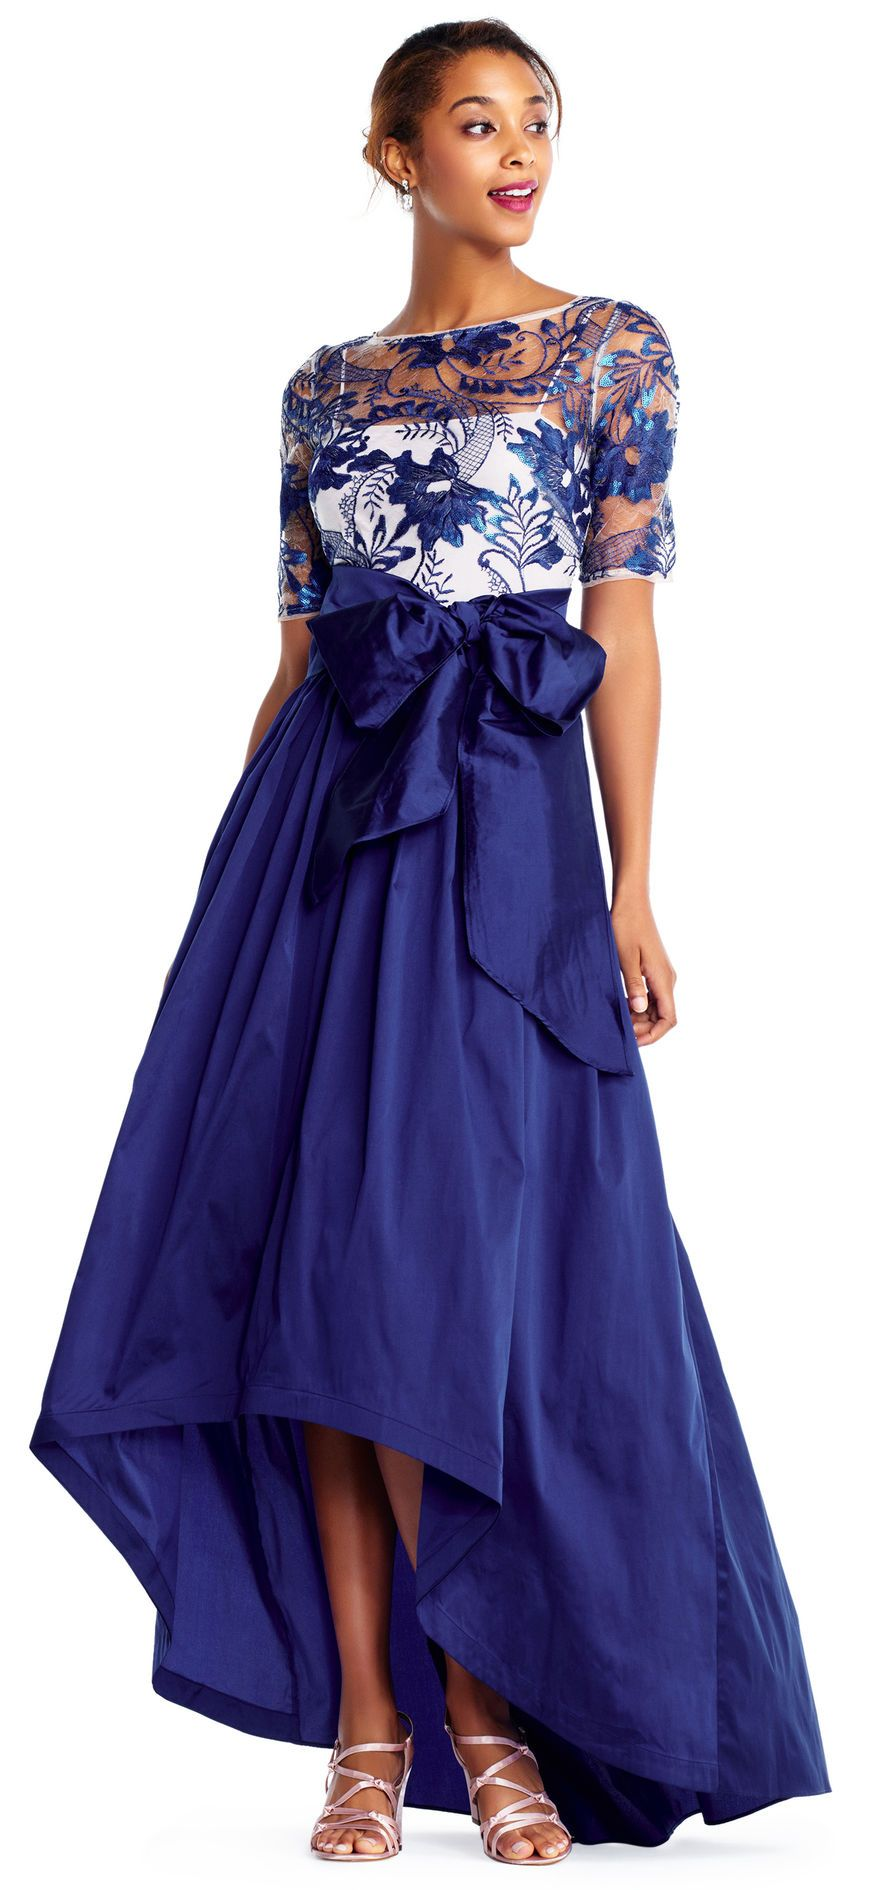 Adrianna papell three quarter sleeve high low gown with floral